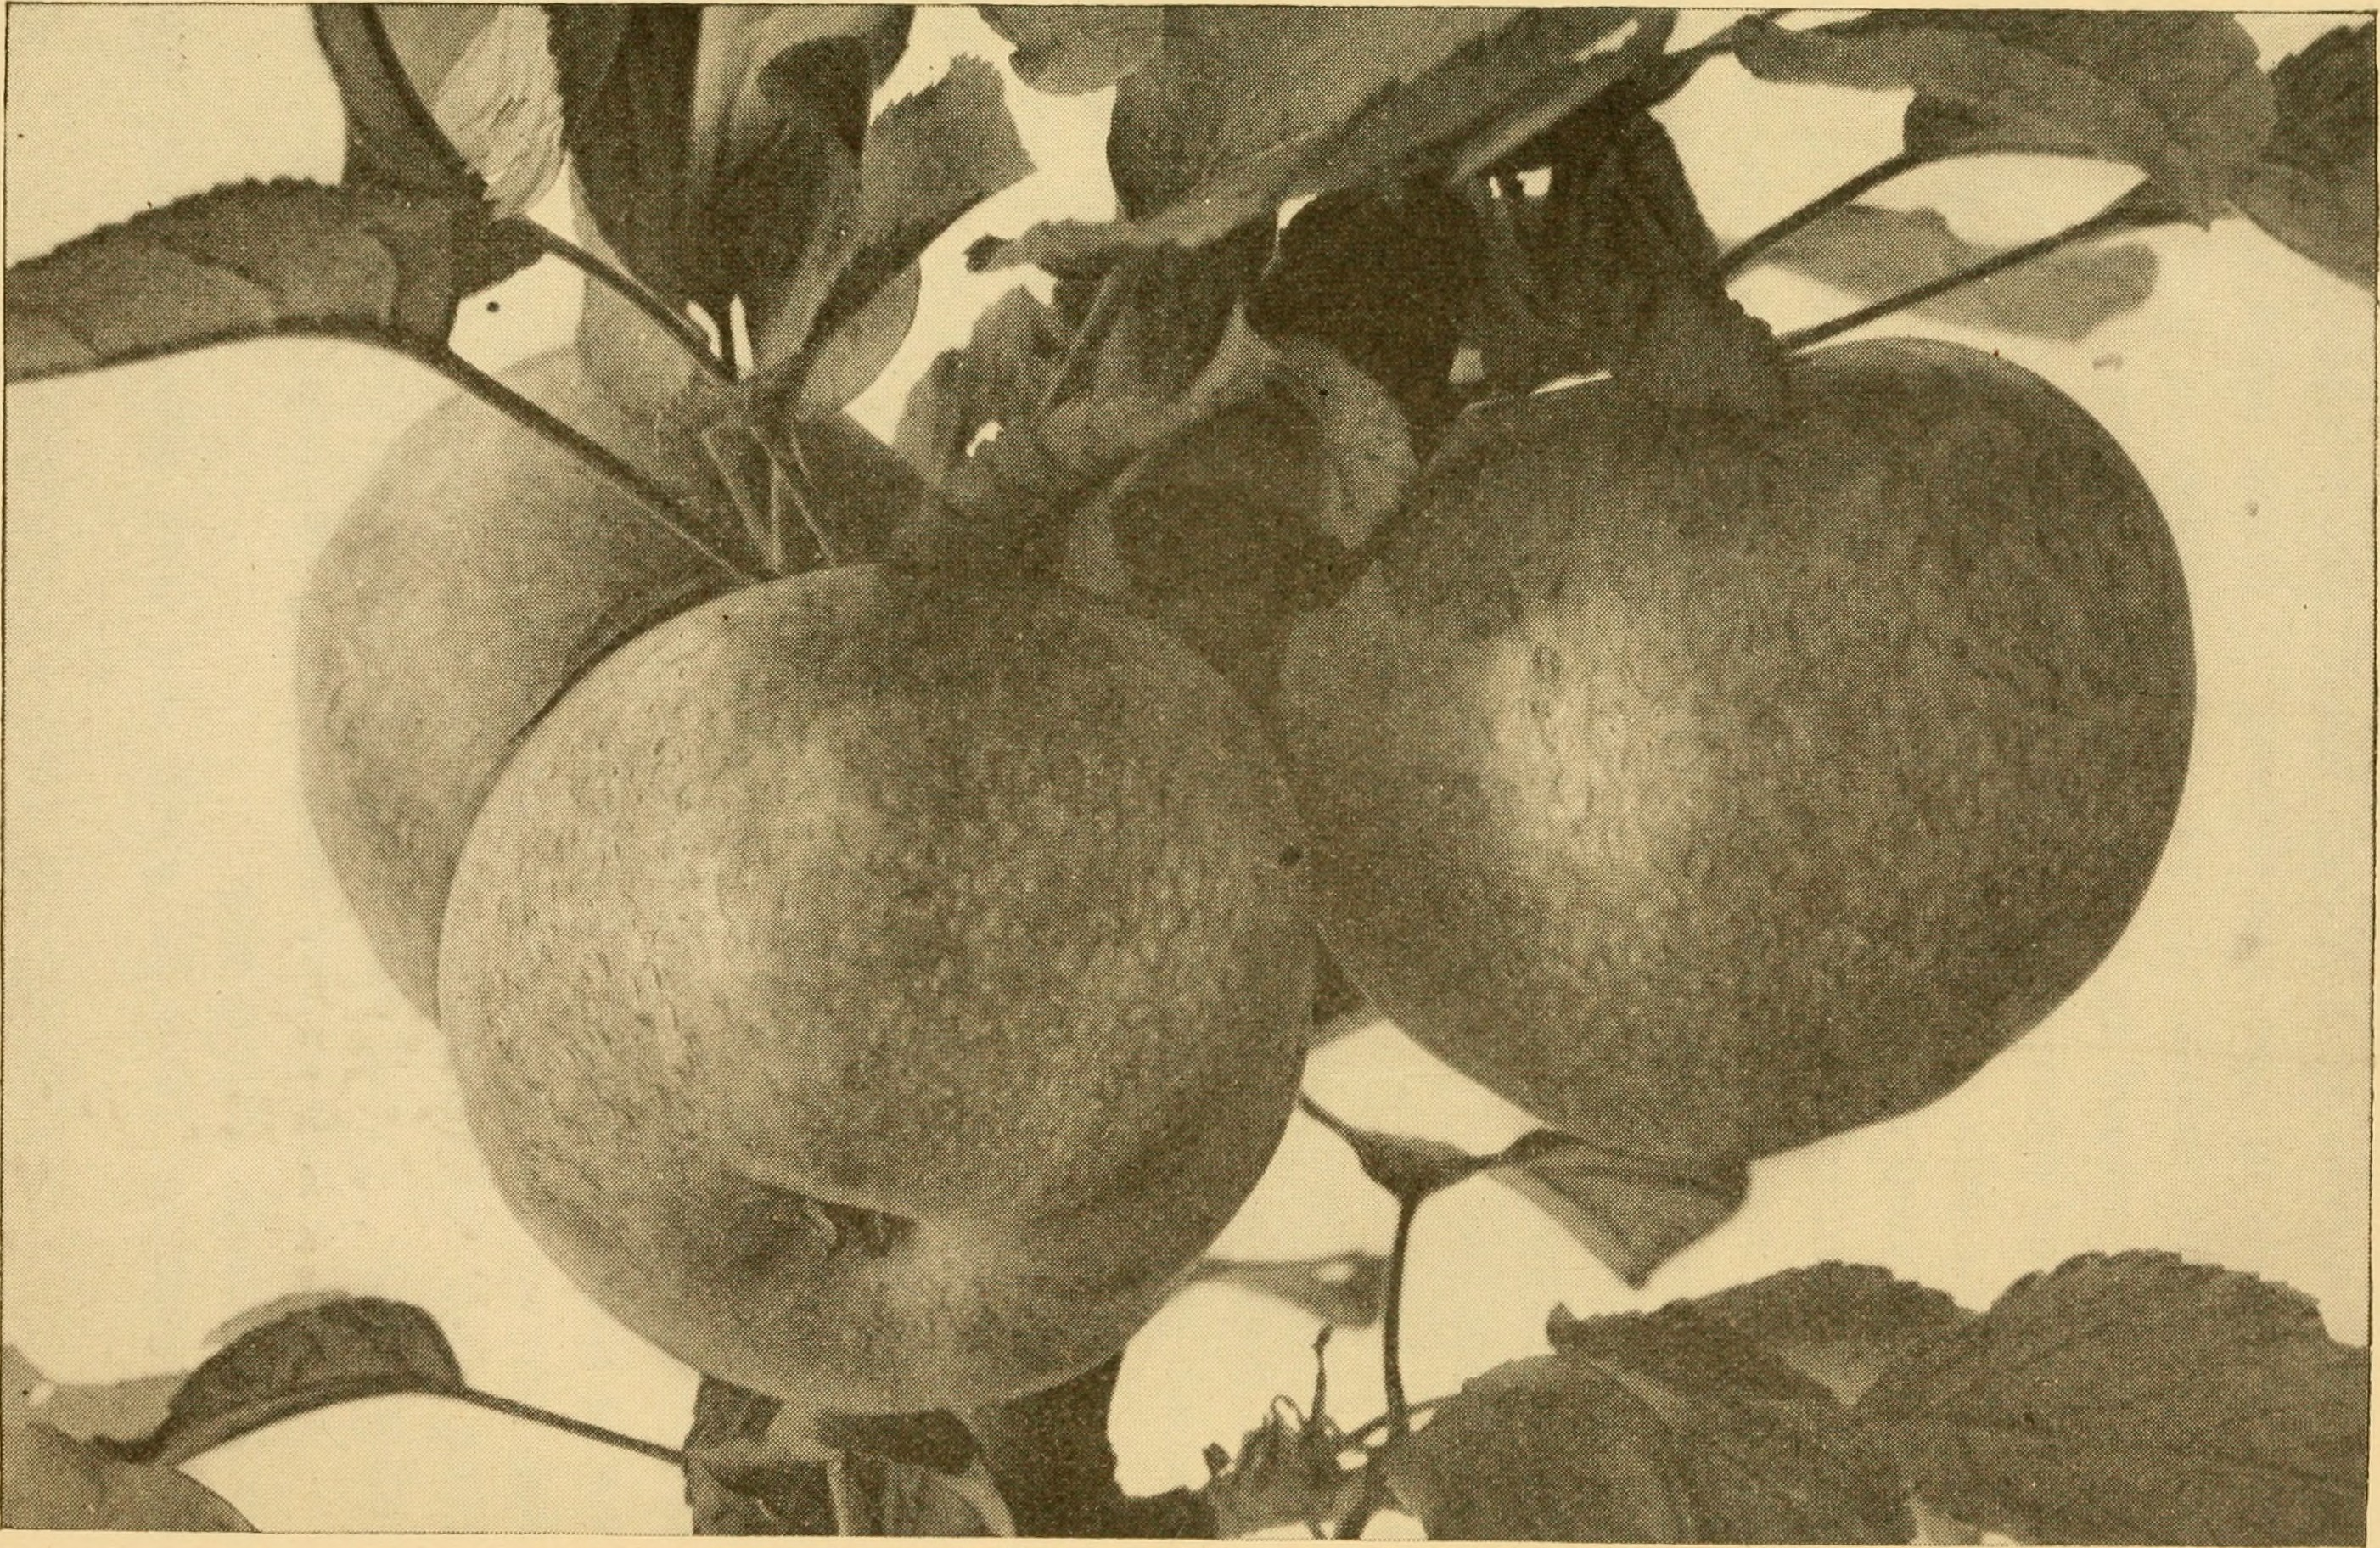 A scanned image of a page from a book about apples